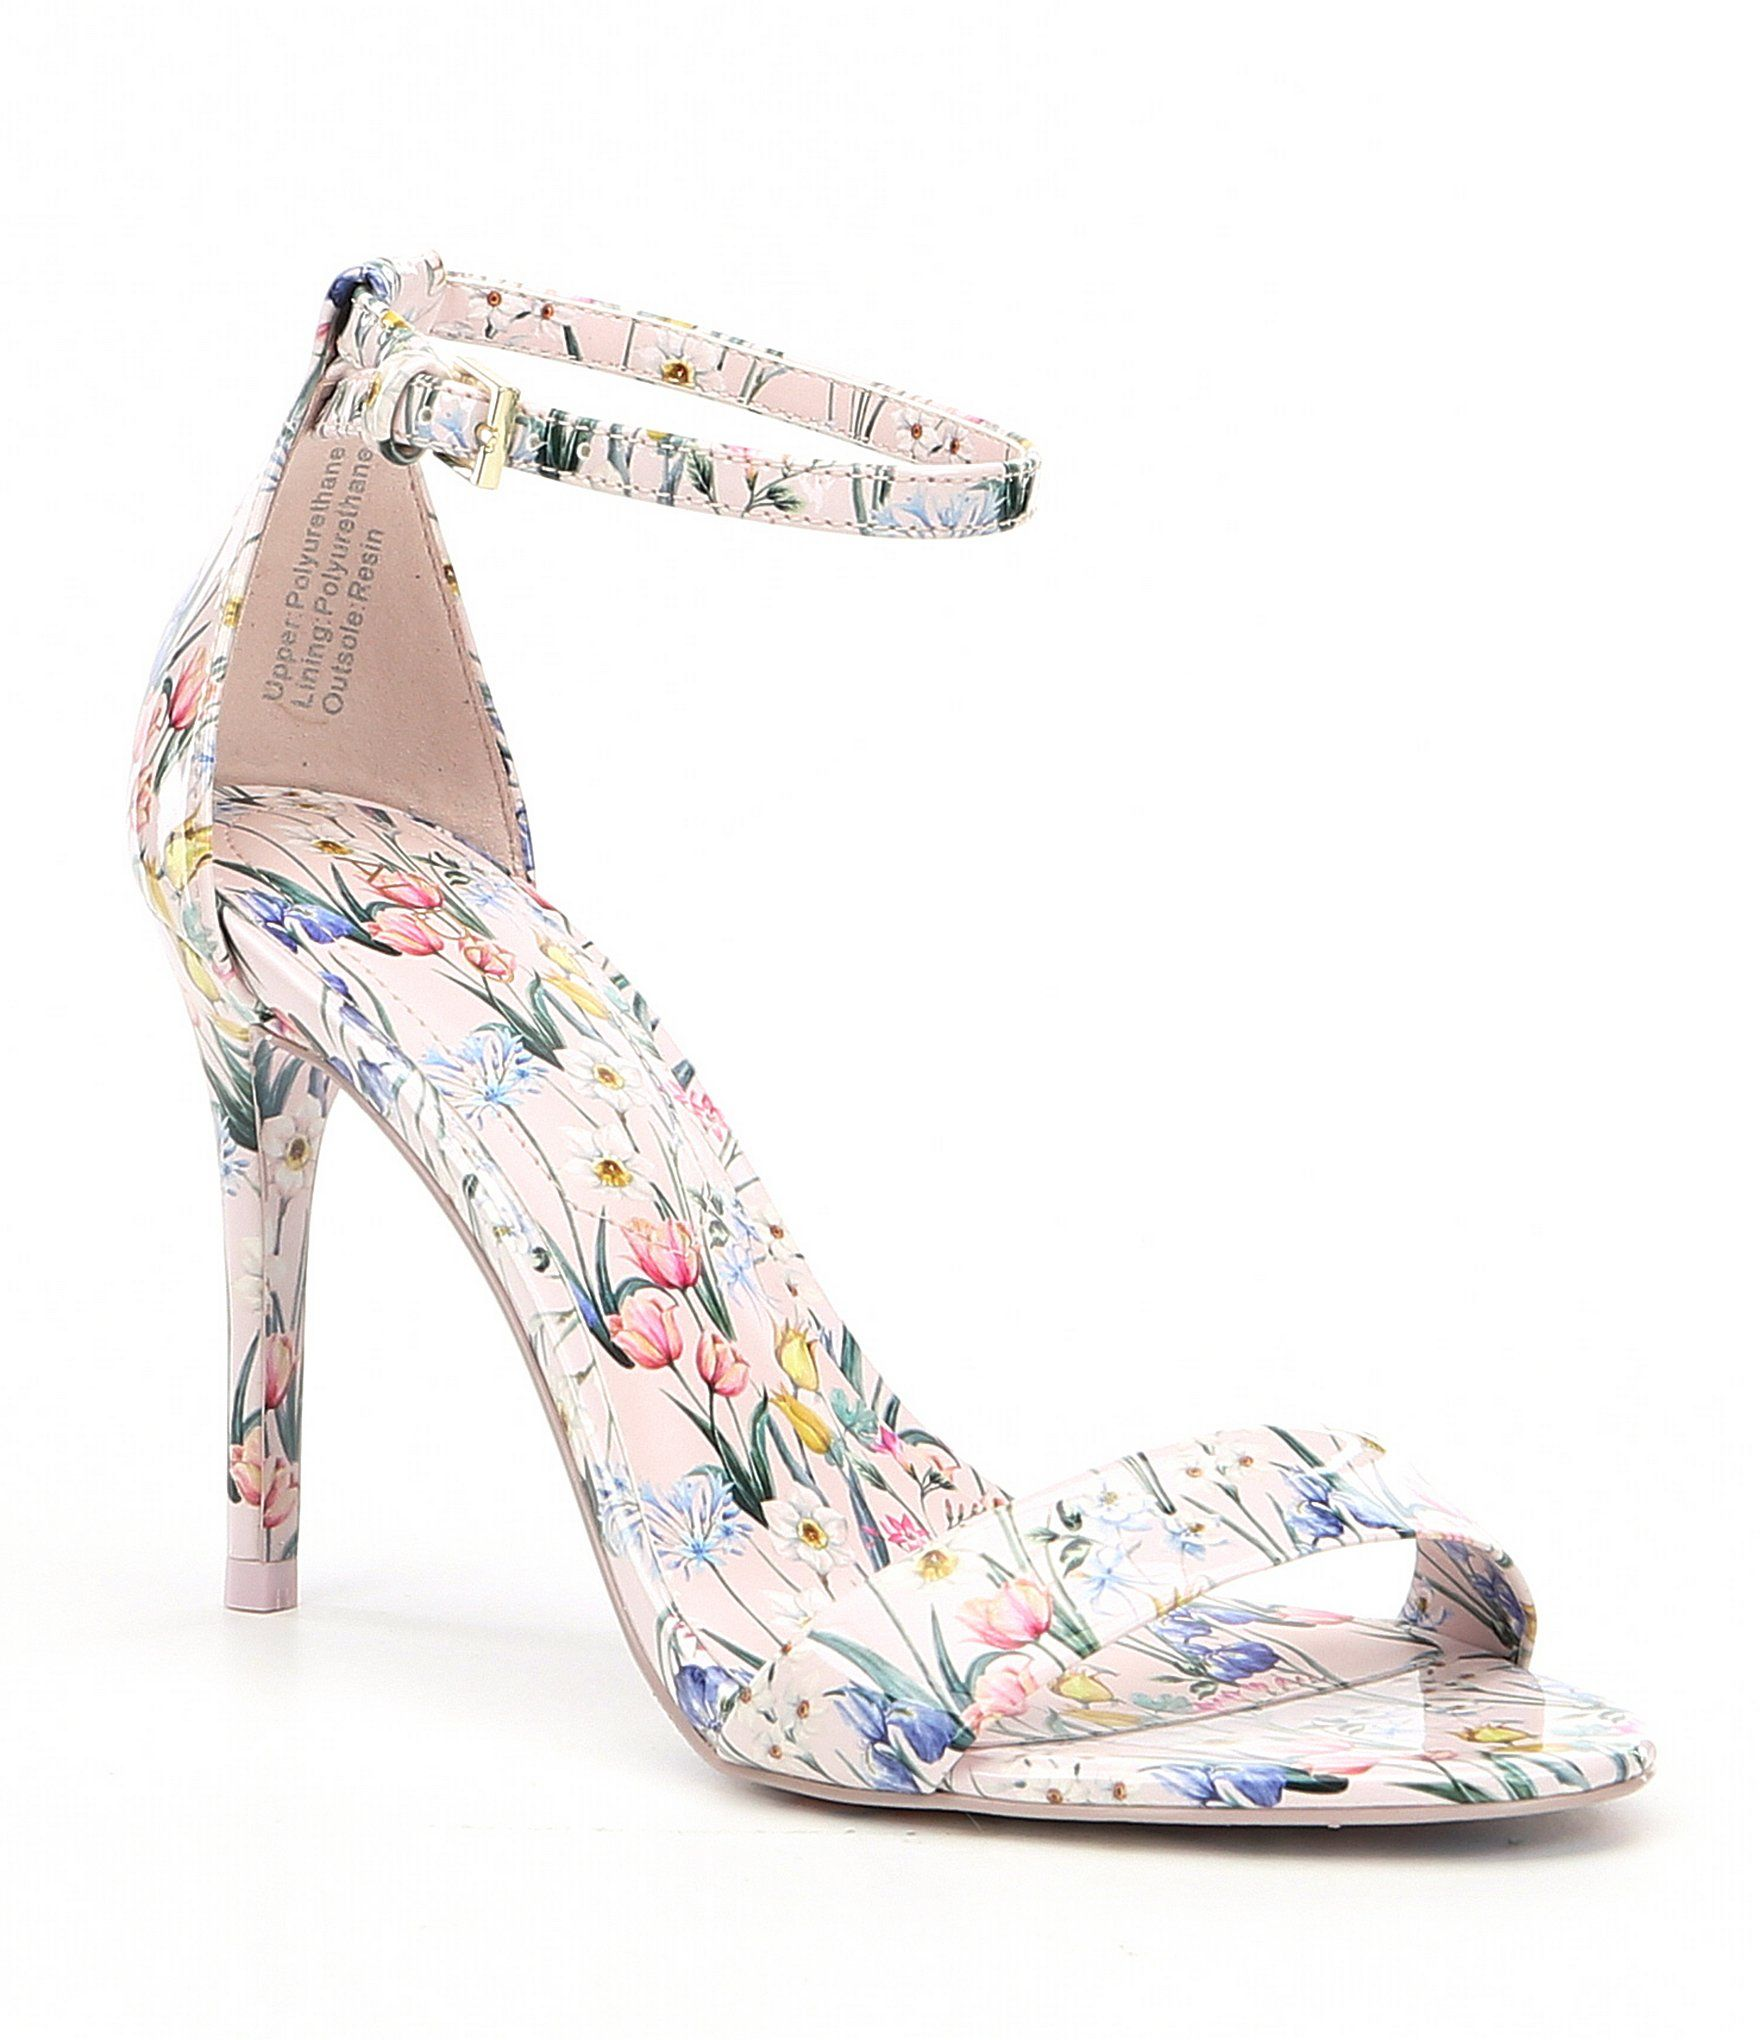 051dd2e5e89 Shop for ALDO Cally Floral Print Ankle Strap Dress Sandals at Dillards.com.  Visit Dillards.com to find clothing